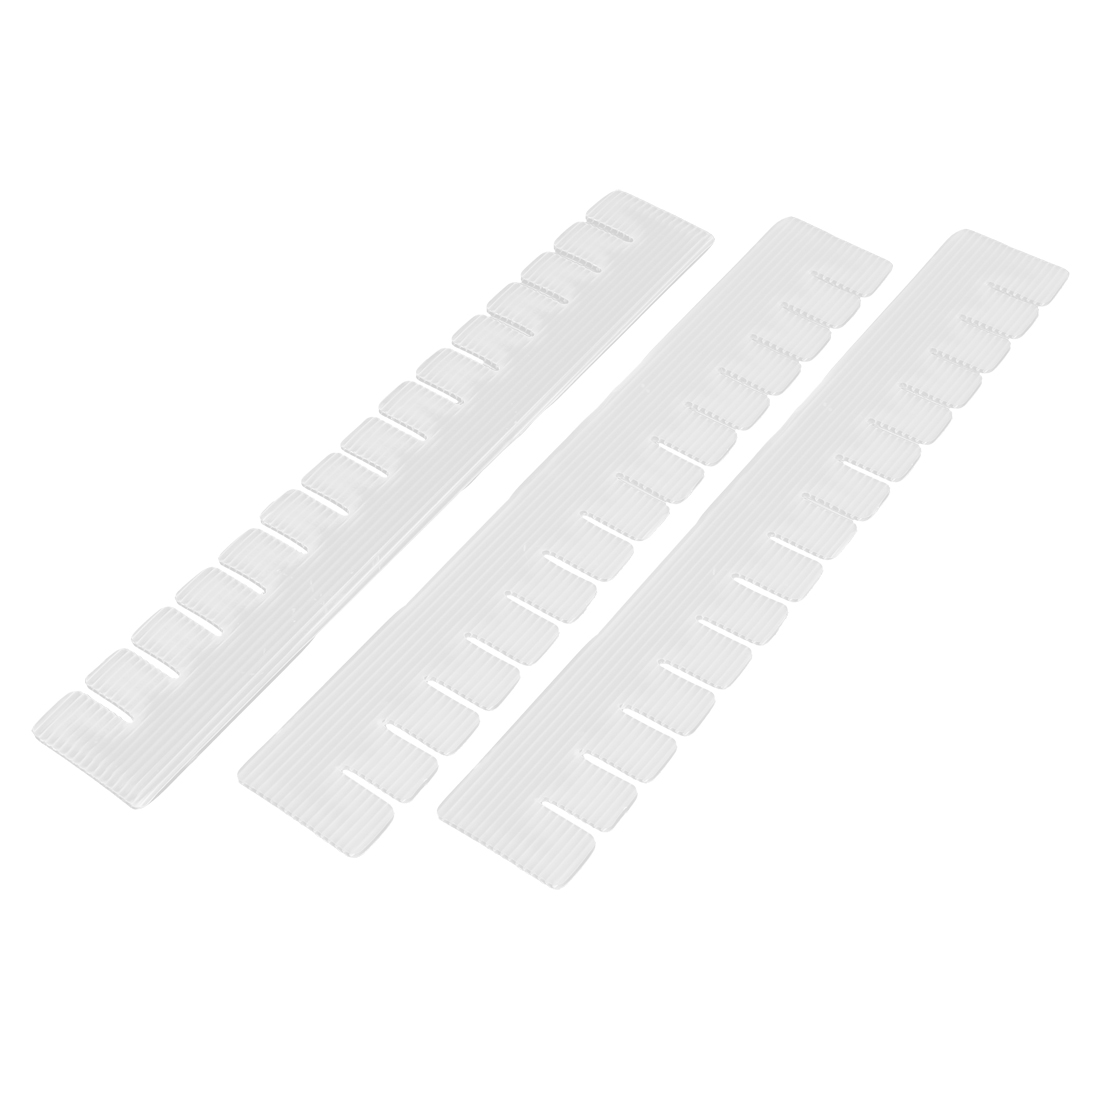 3 Pcs White Plastic Household DIY Grid Storage Box Drawer Divider